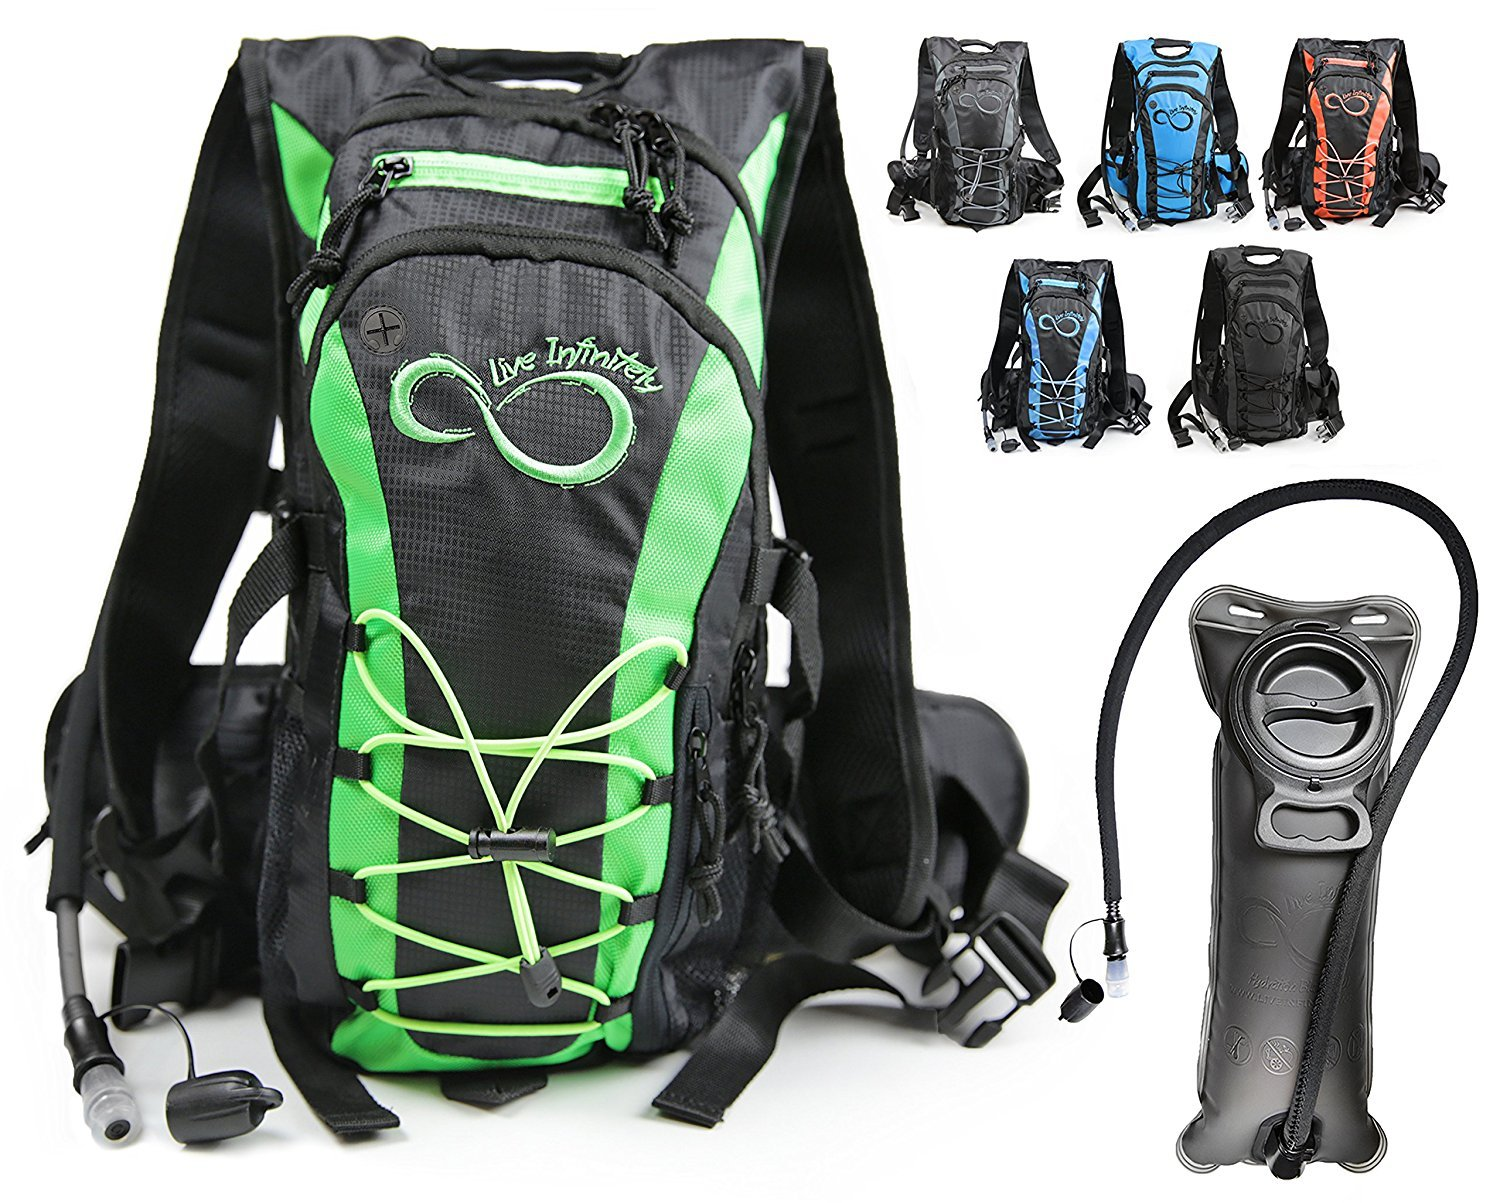 Live Infinitely Hydration Backpack With 2.0L TPU Leak Proof Water Bladder- 600D Polyester -Adjustable Padded Shoulder, Chest & Waist Straps- Silicon Bite Tip & Shut Off Valve- (Green)